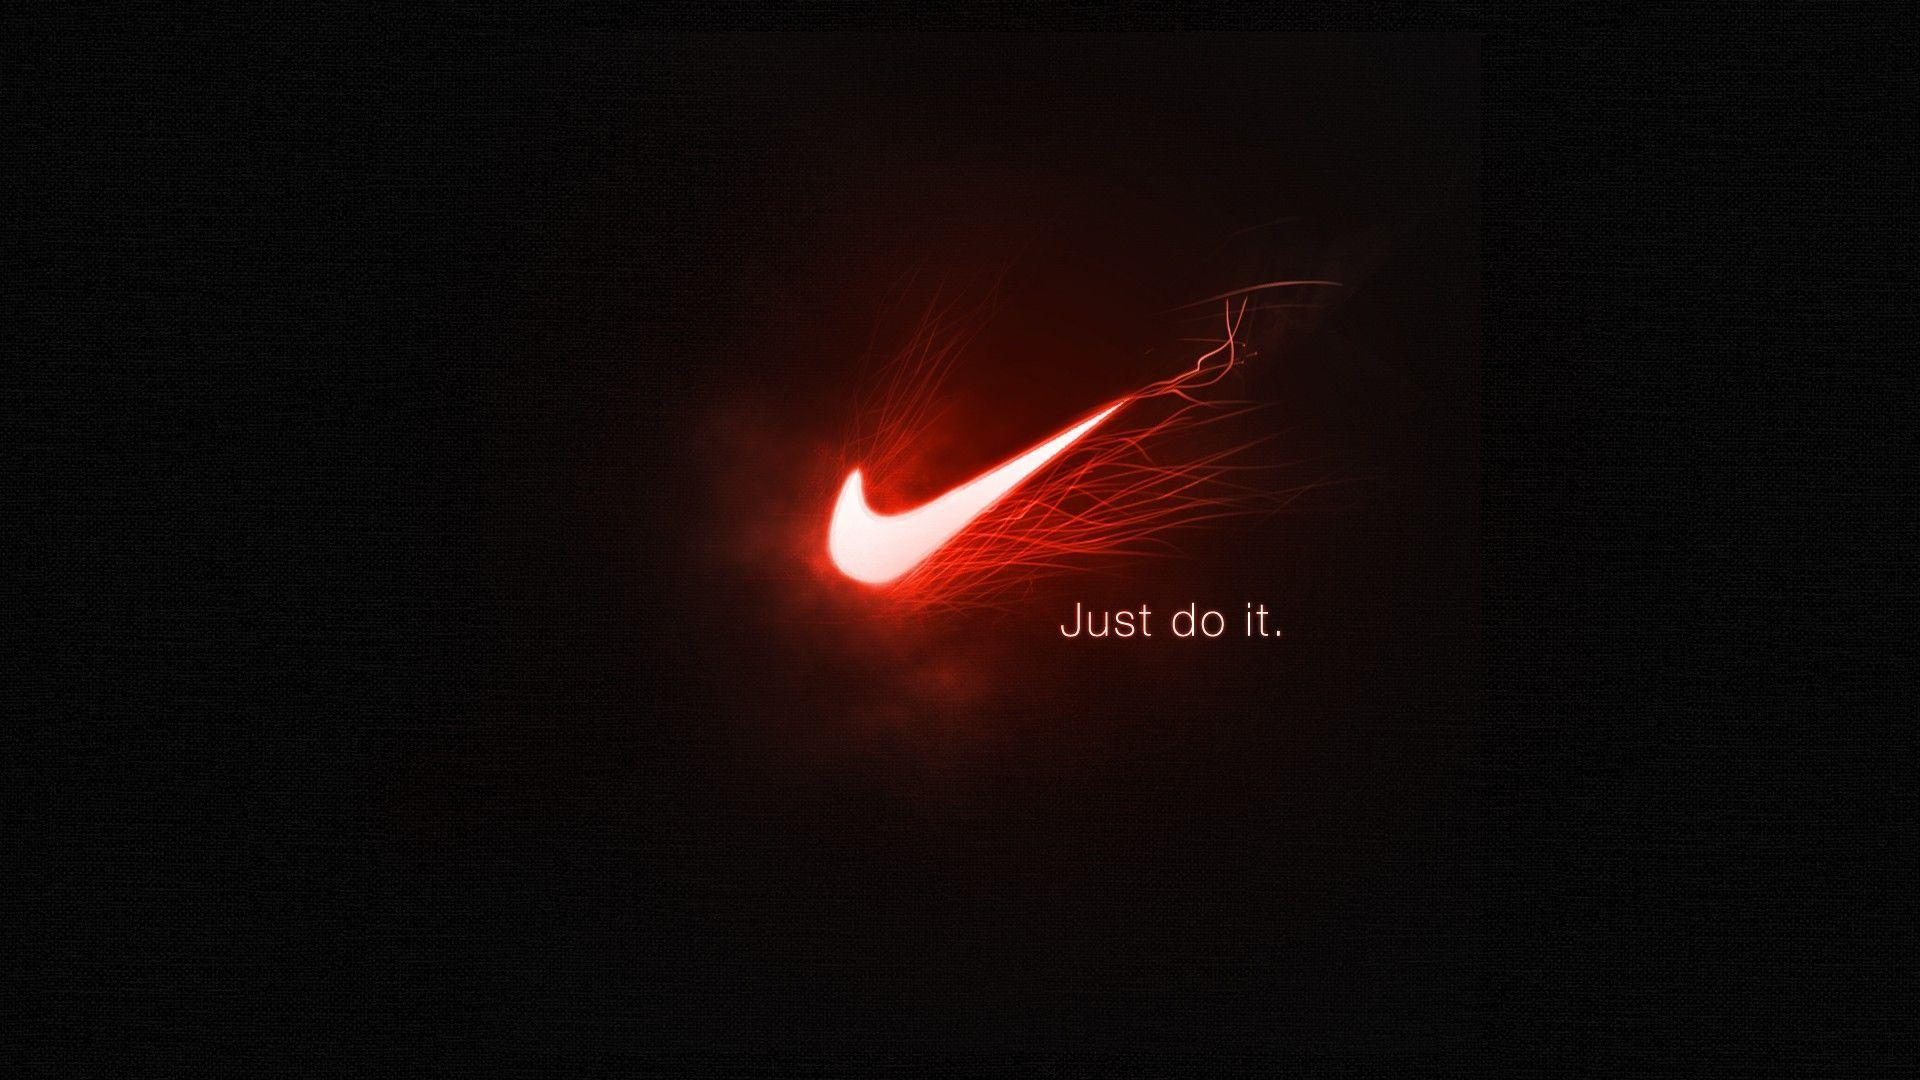 Nike 3d wallpapers wallpaper cave for 3d paper wallpaper